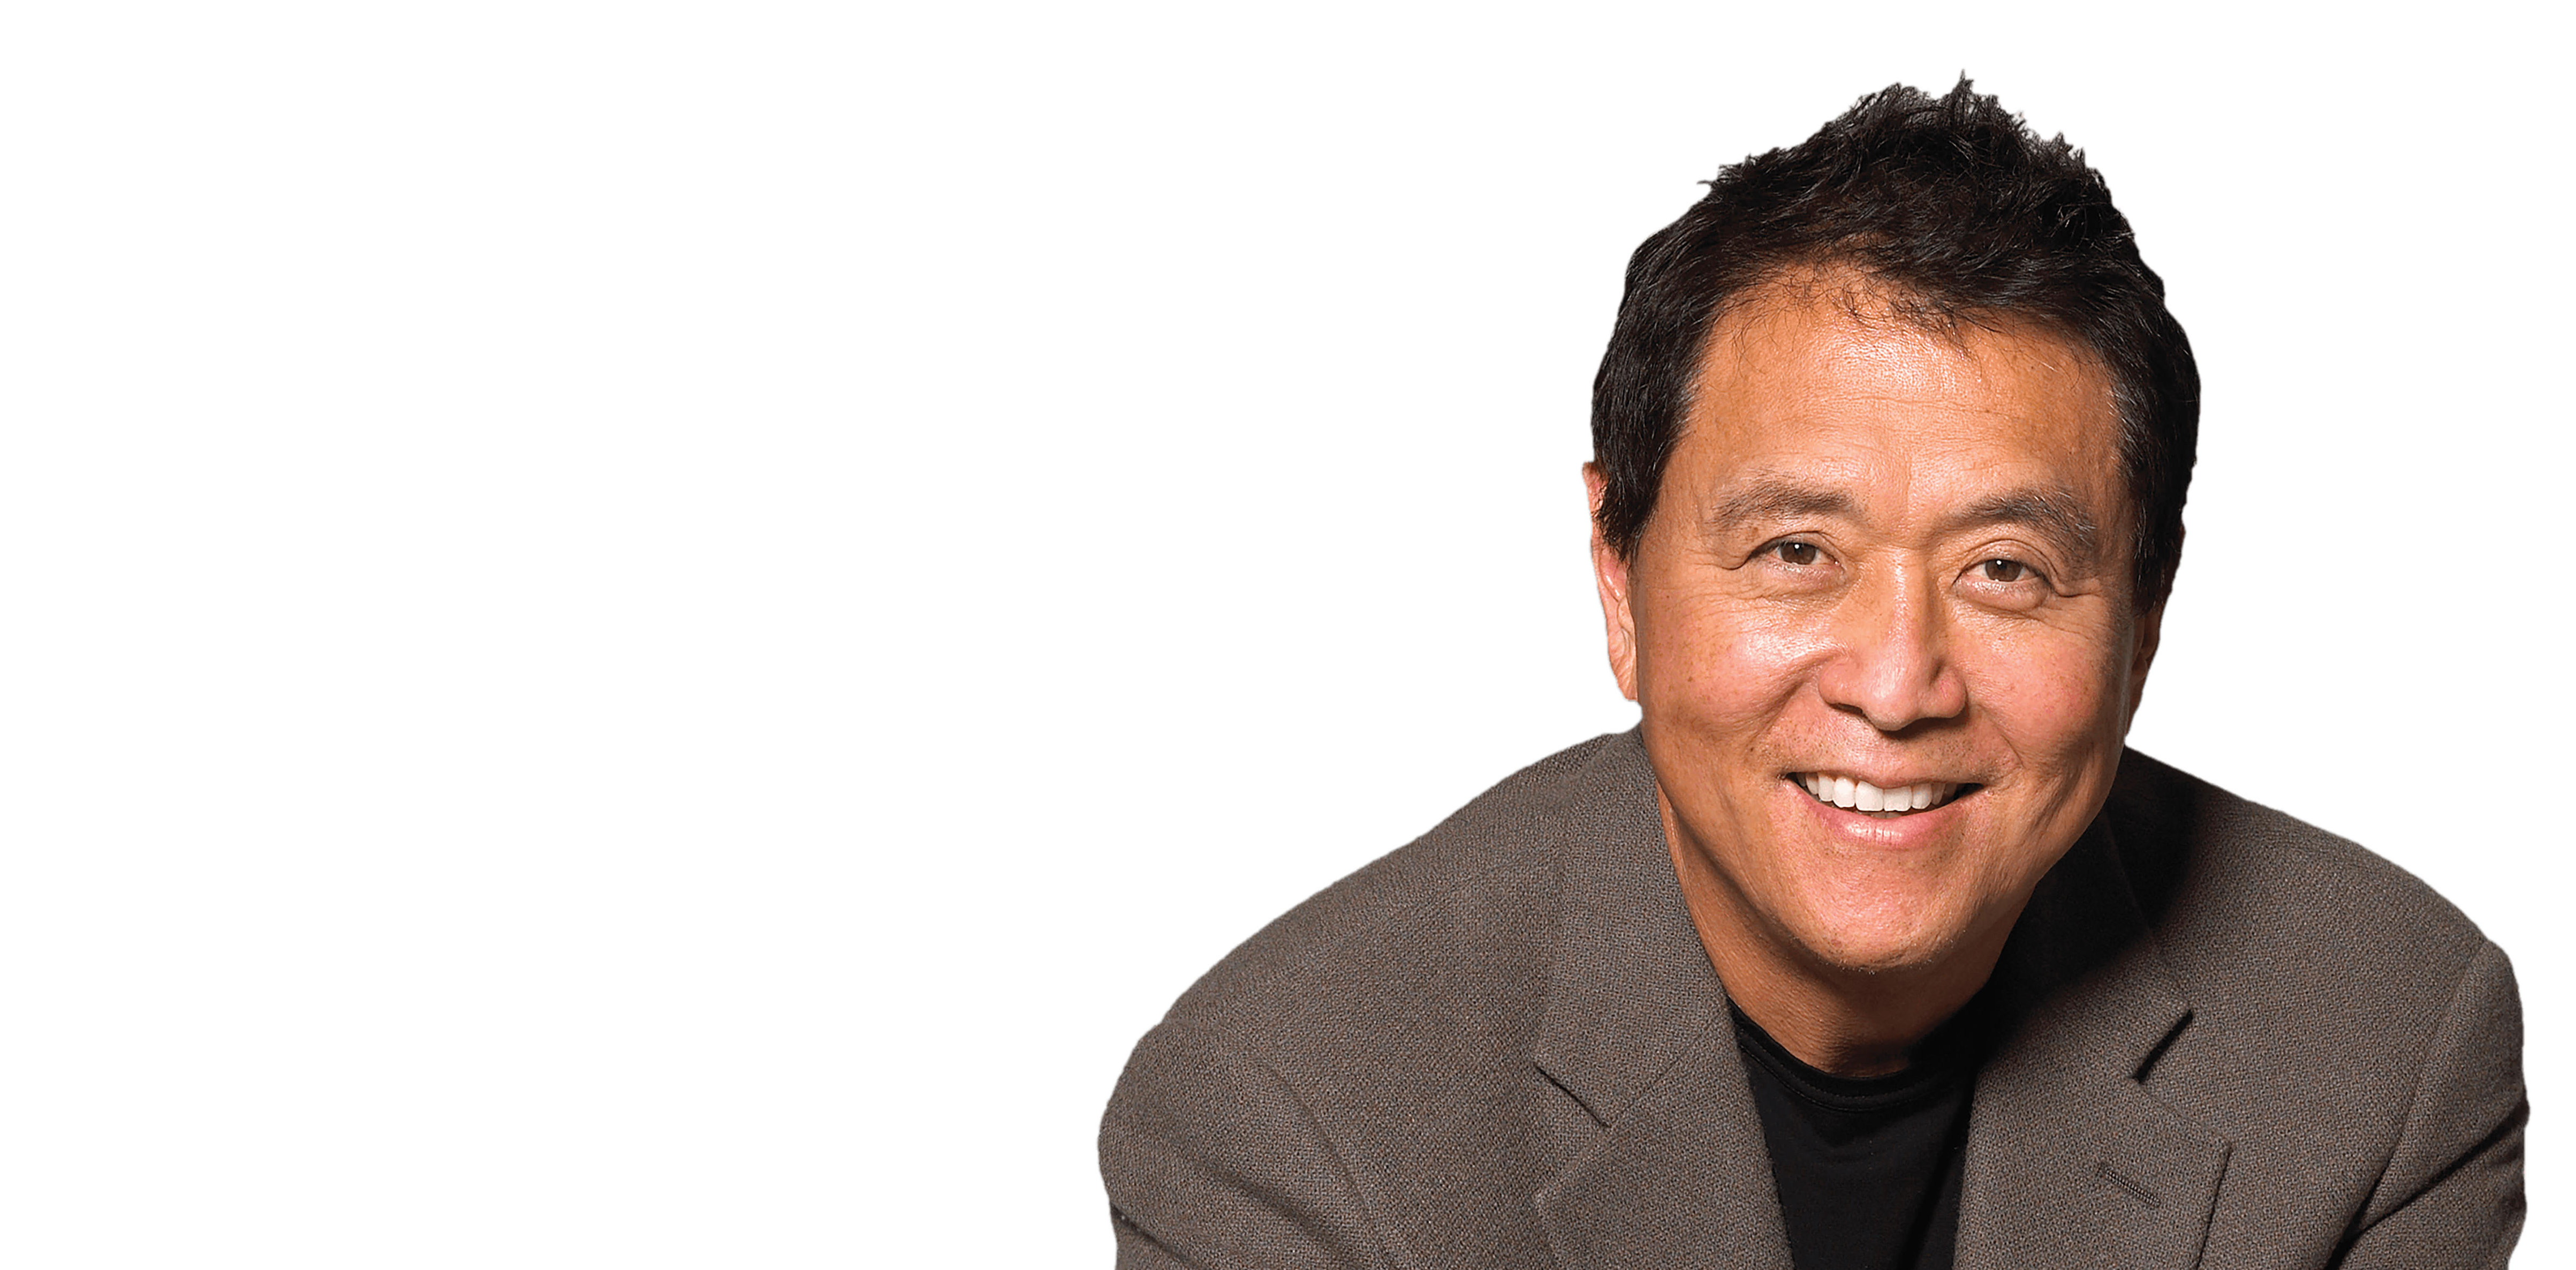 Is Robert Kiyosaki an Idiot?